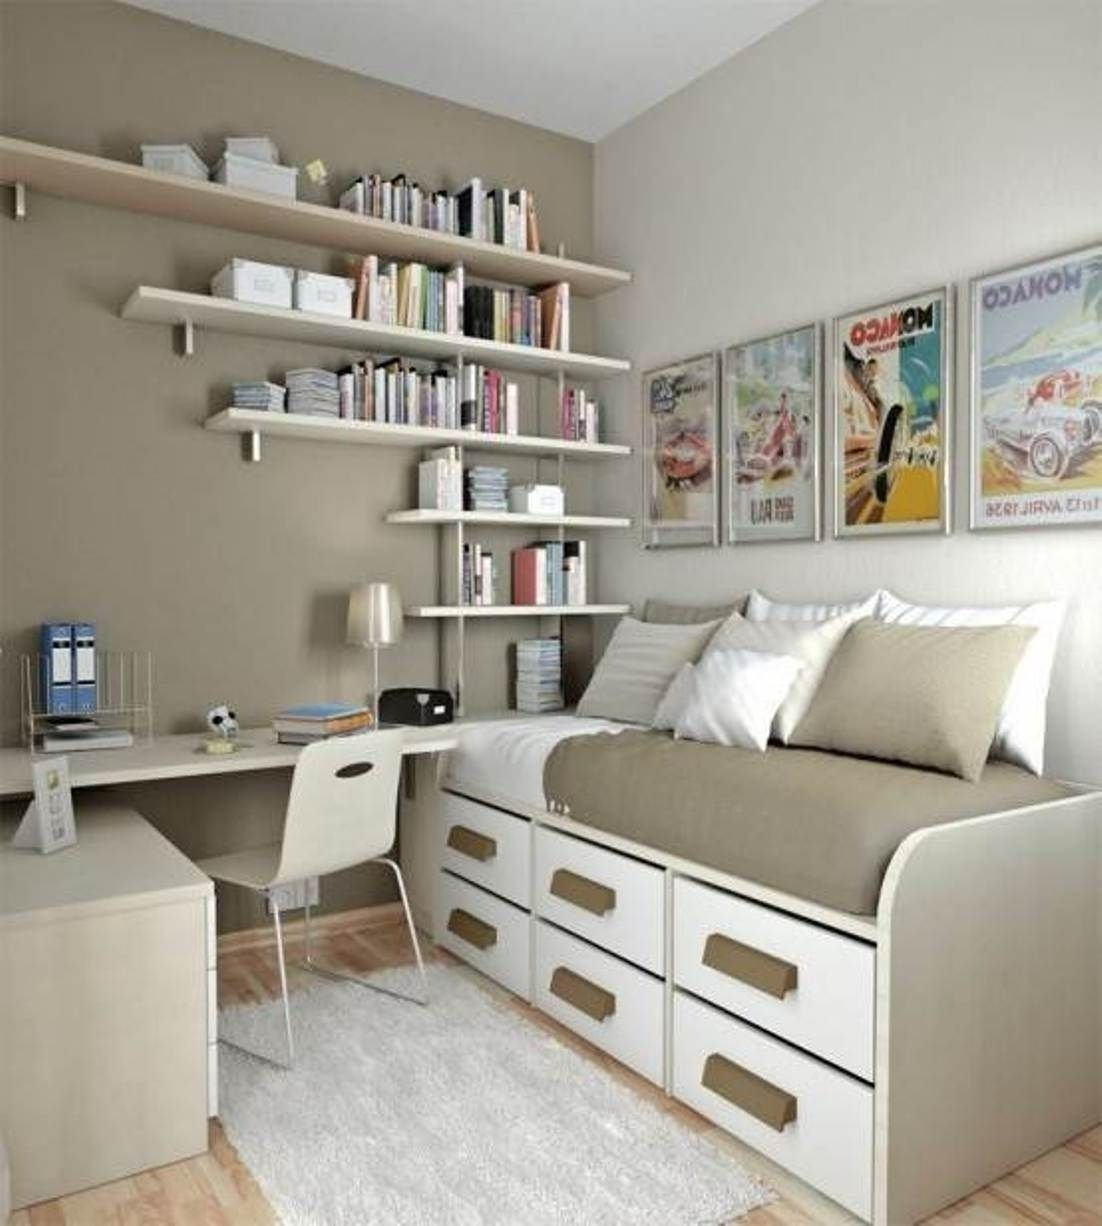 10 Perfect Space Saving Ideas For Small Homes 30 clever space saving design ideas for small homes space saving 2020